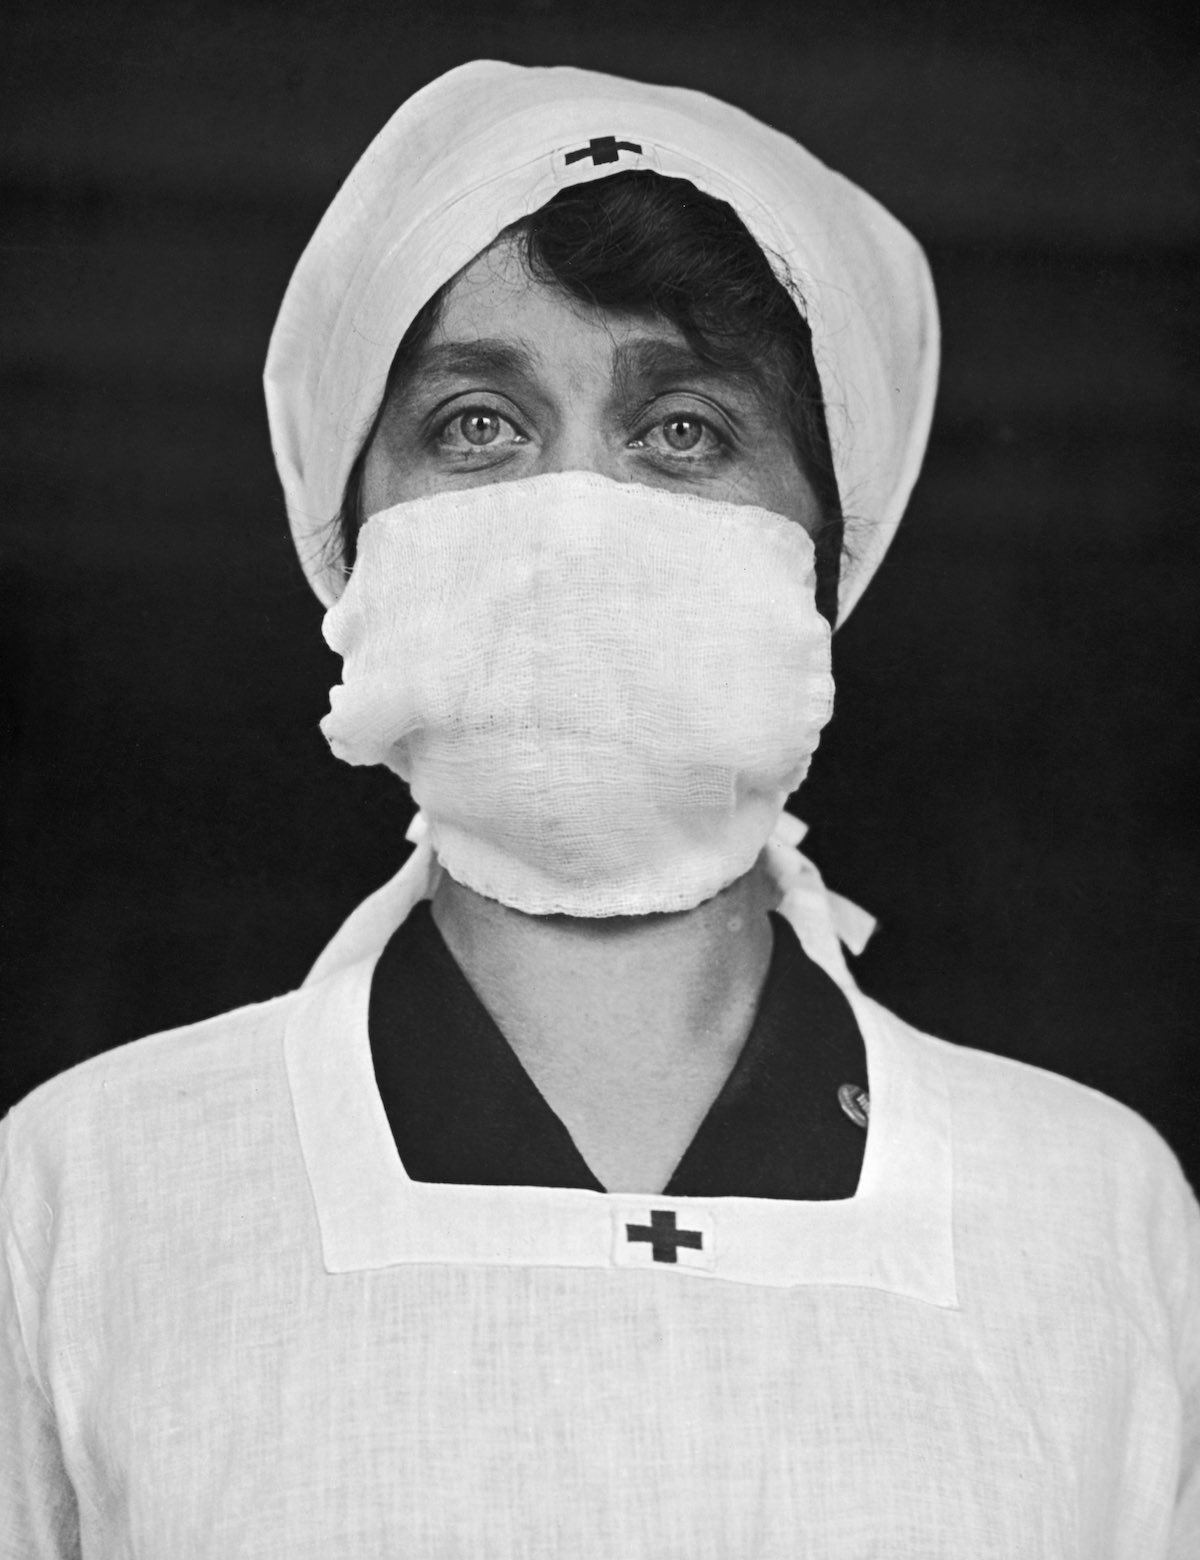 c. 1918 An American Red Cross employee wears a face mask in an attempt to help decrease the spread of influenza. IMAGE: PAUL THOMPSON/FPG/HULTON ARCHIVE/GETTY IMAGES courtesy of Mashable.